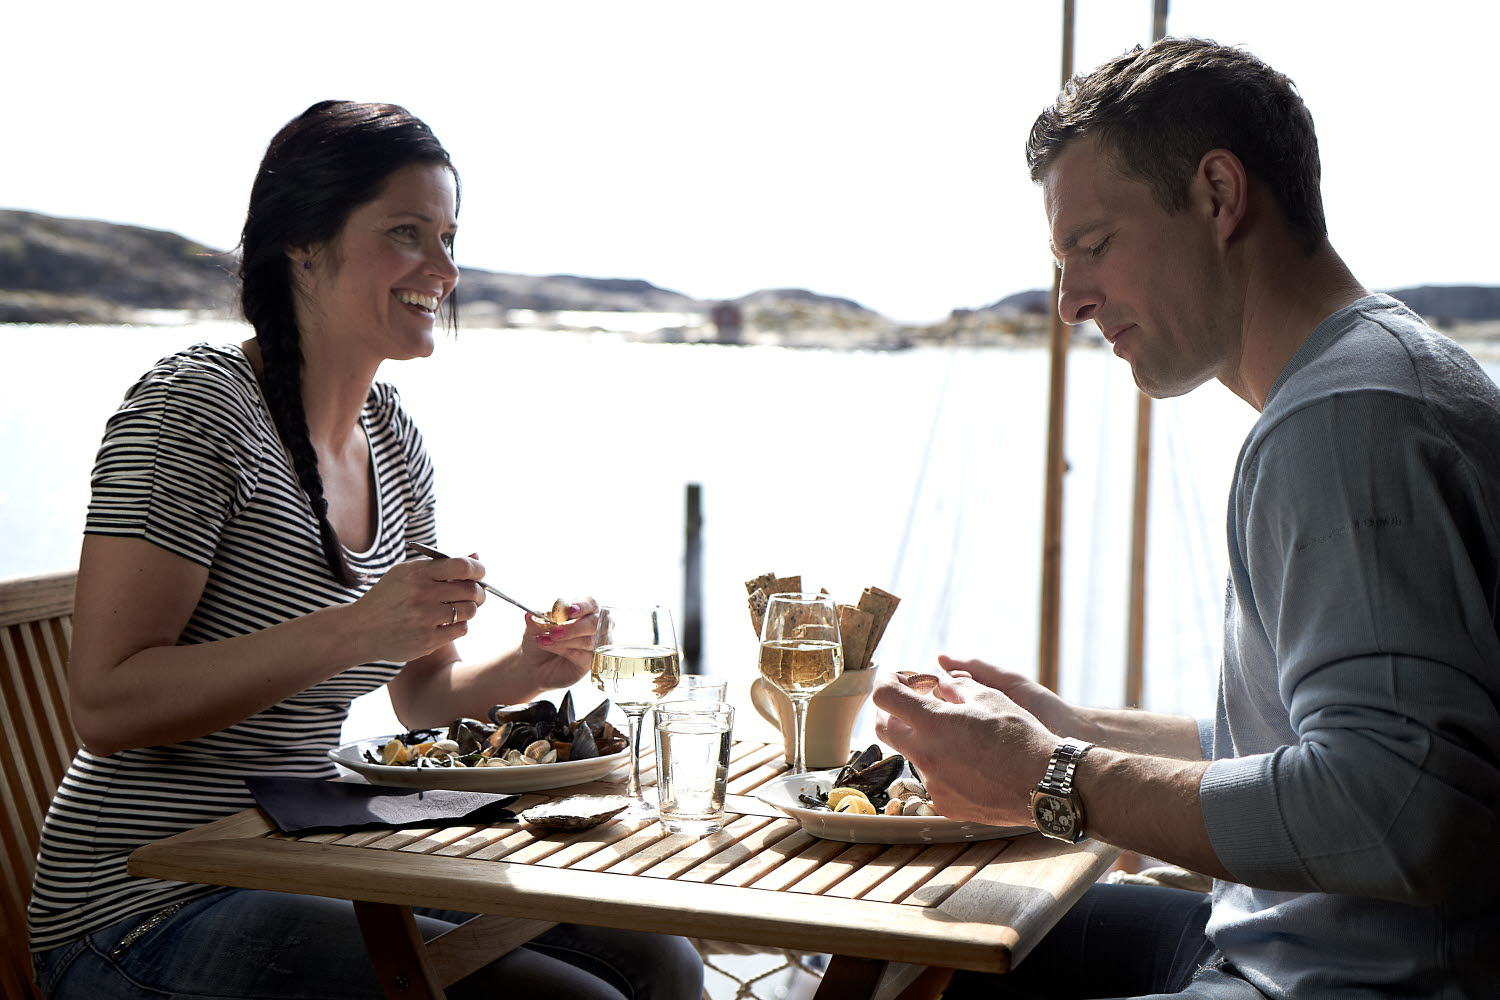 Couple eating mussel dinner by the sea - Photo Cred Jonas Ingman